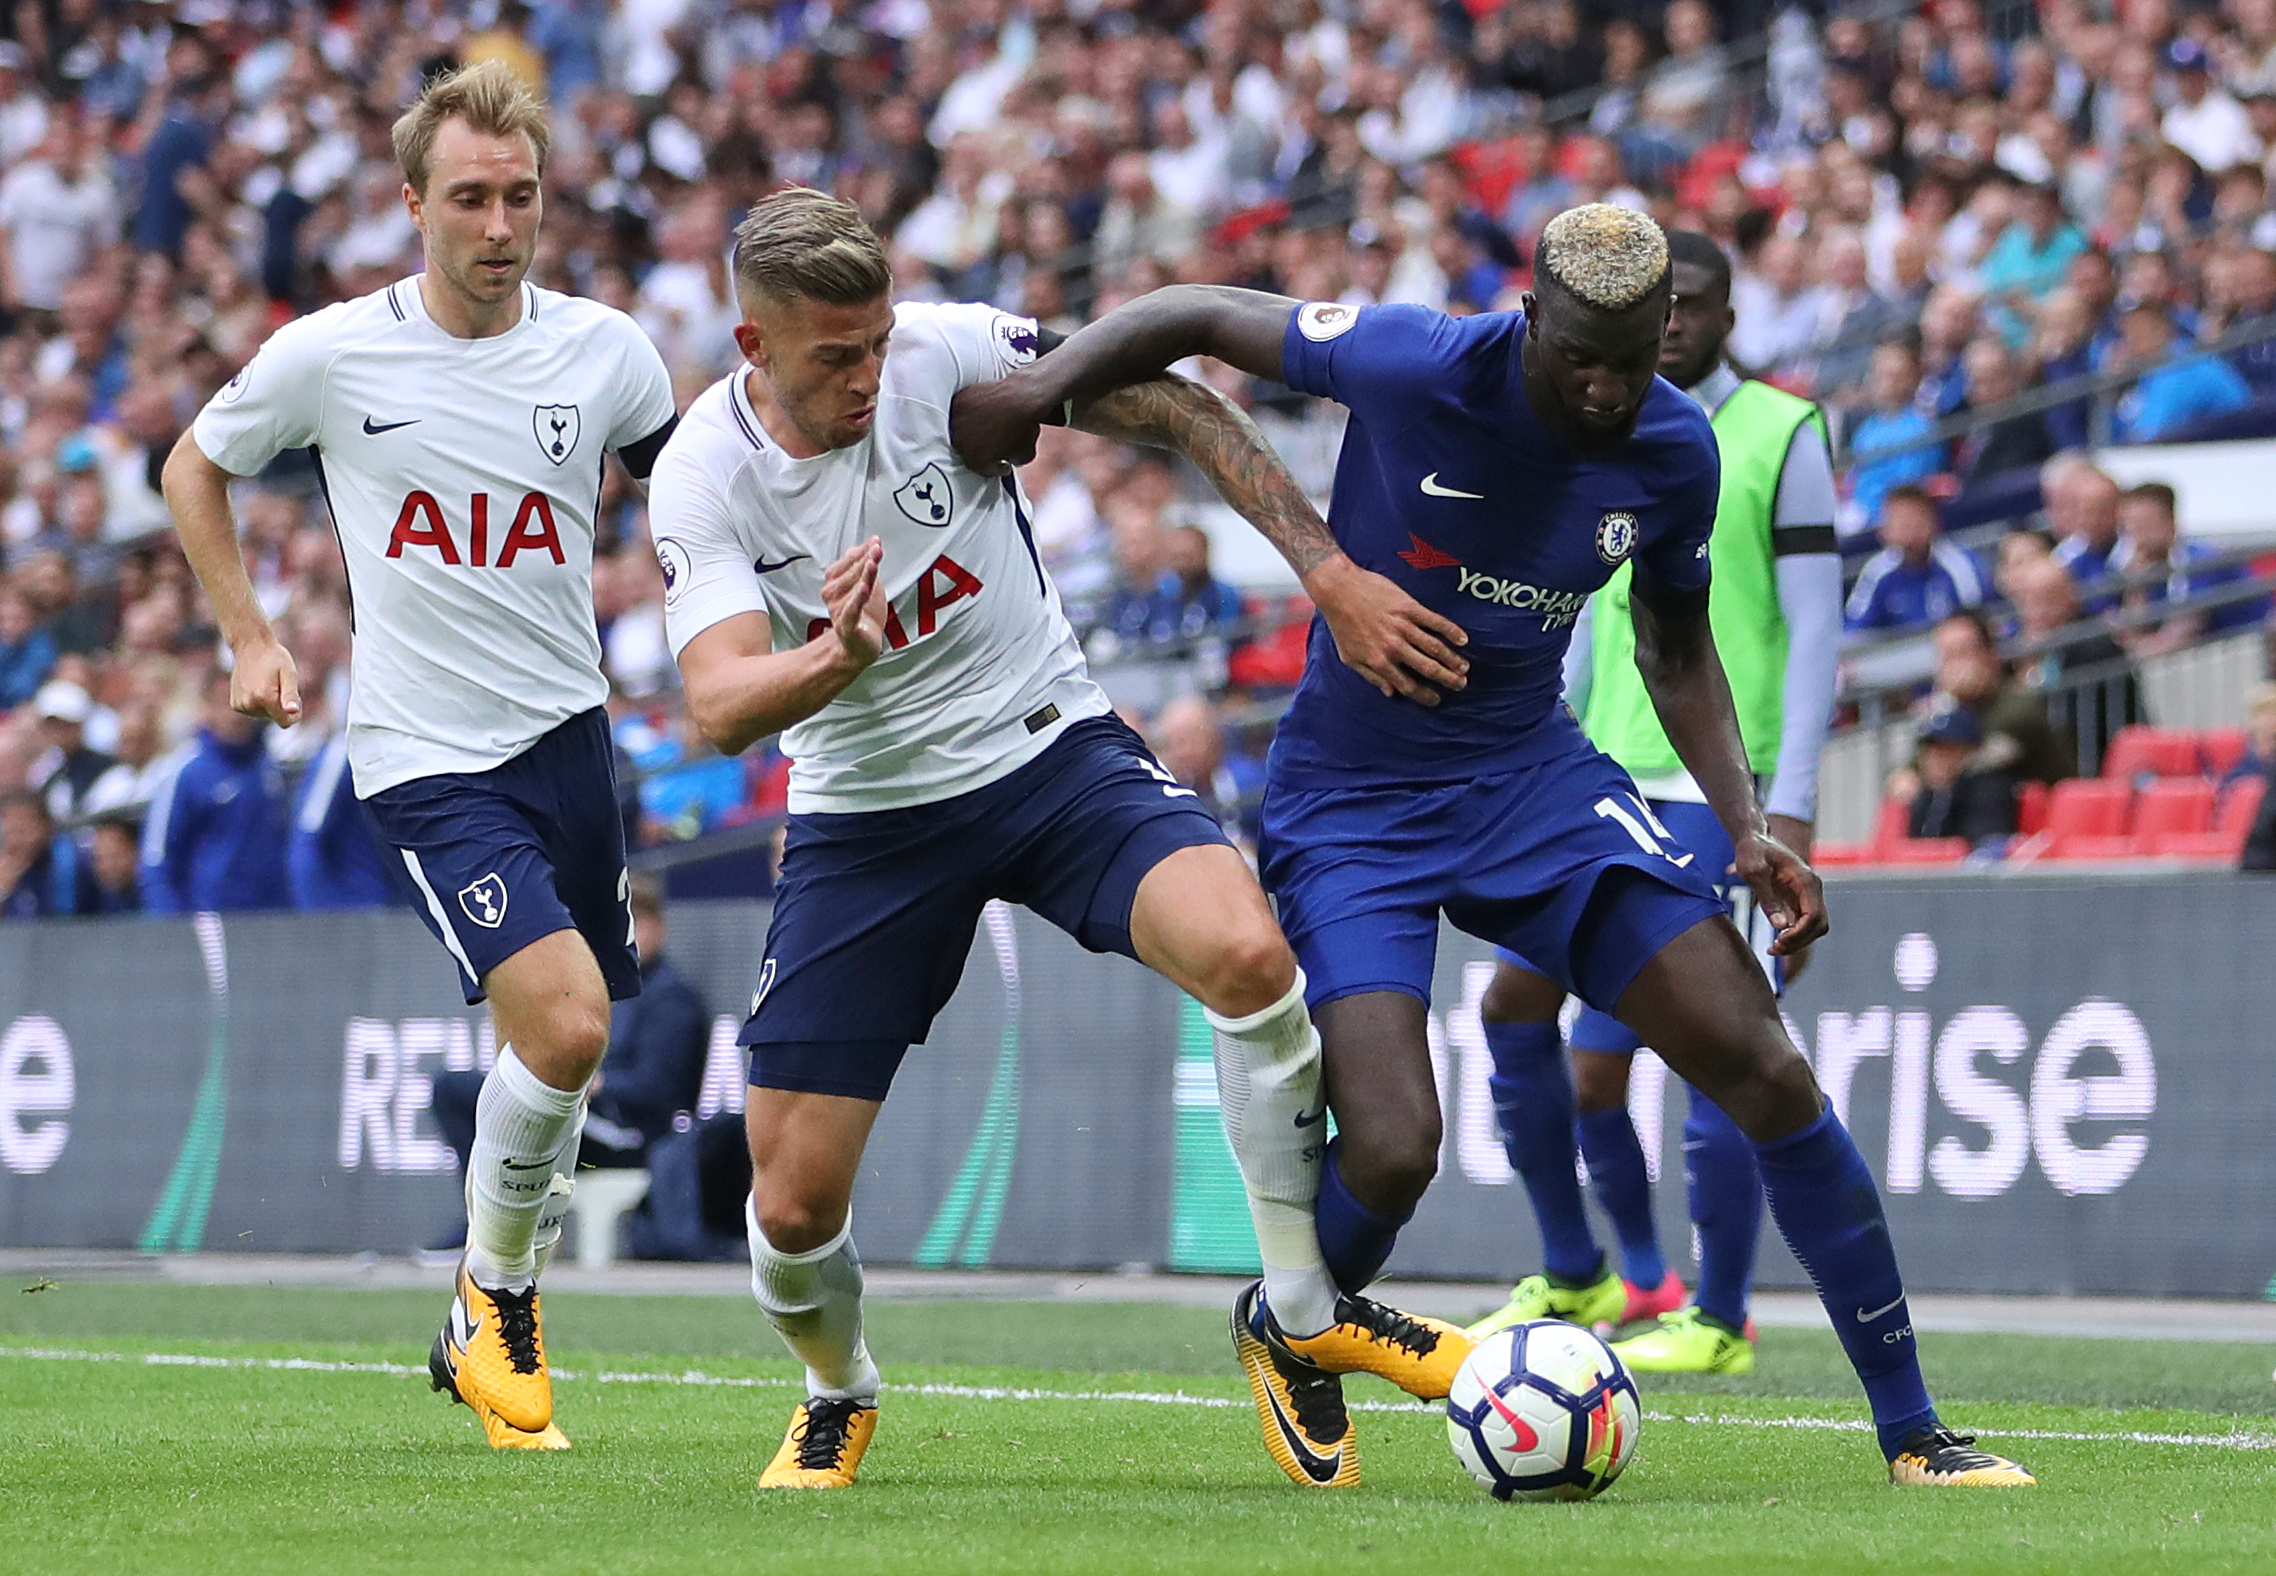 Manchester City keen on Tottenham Hotspur star Toby Alderweireld